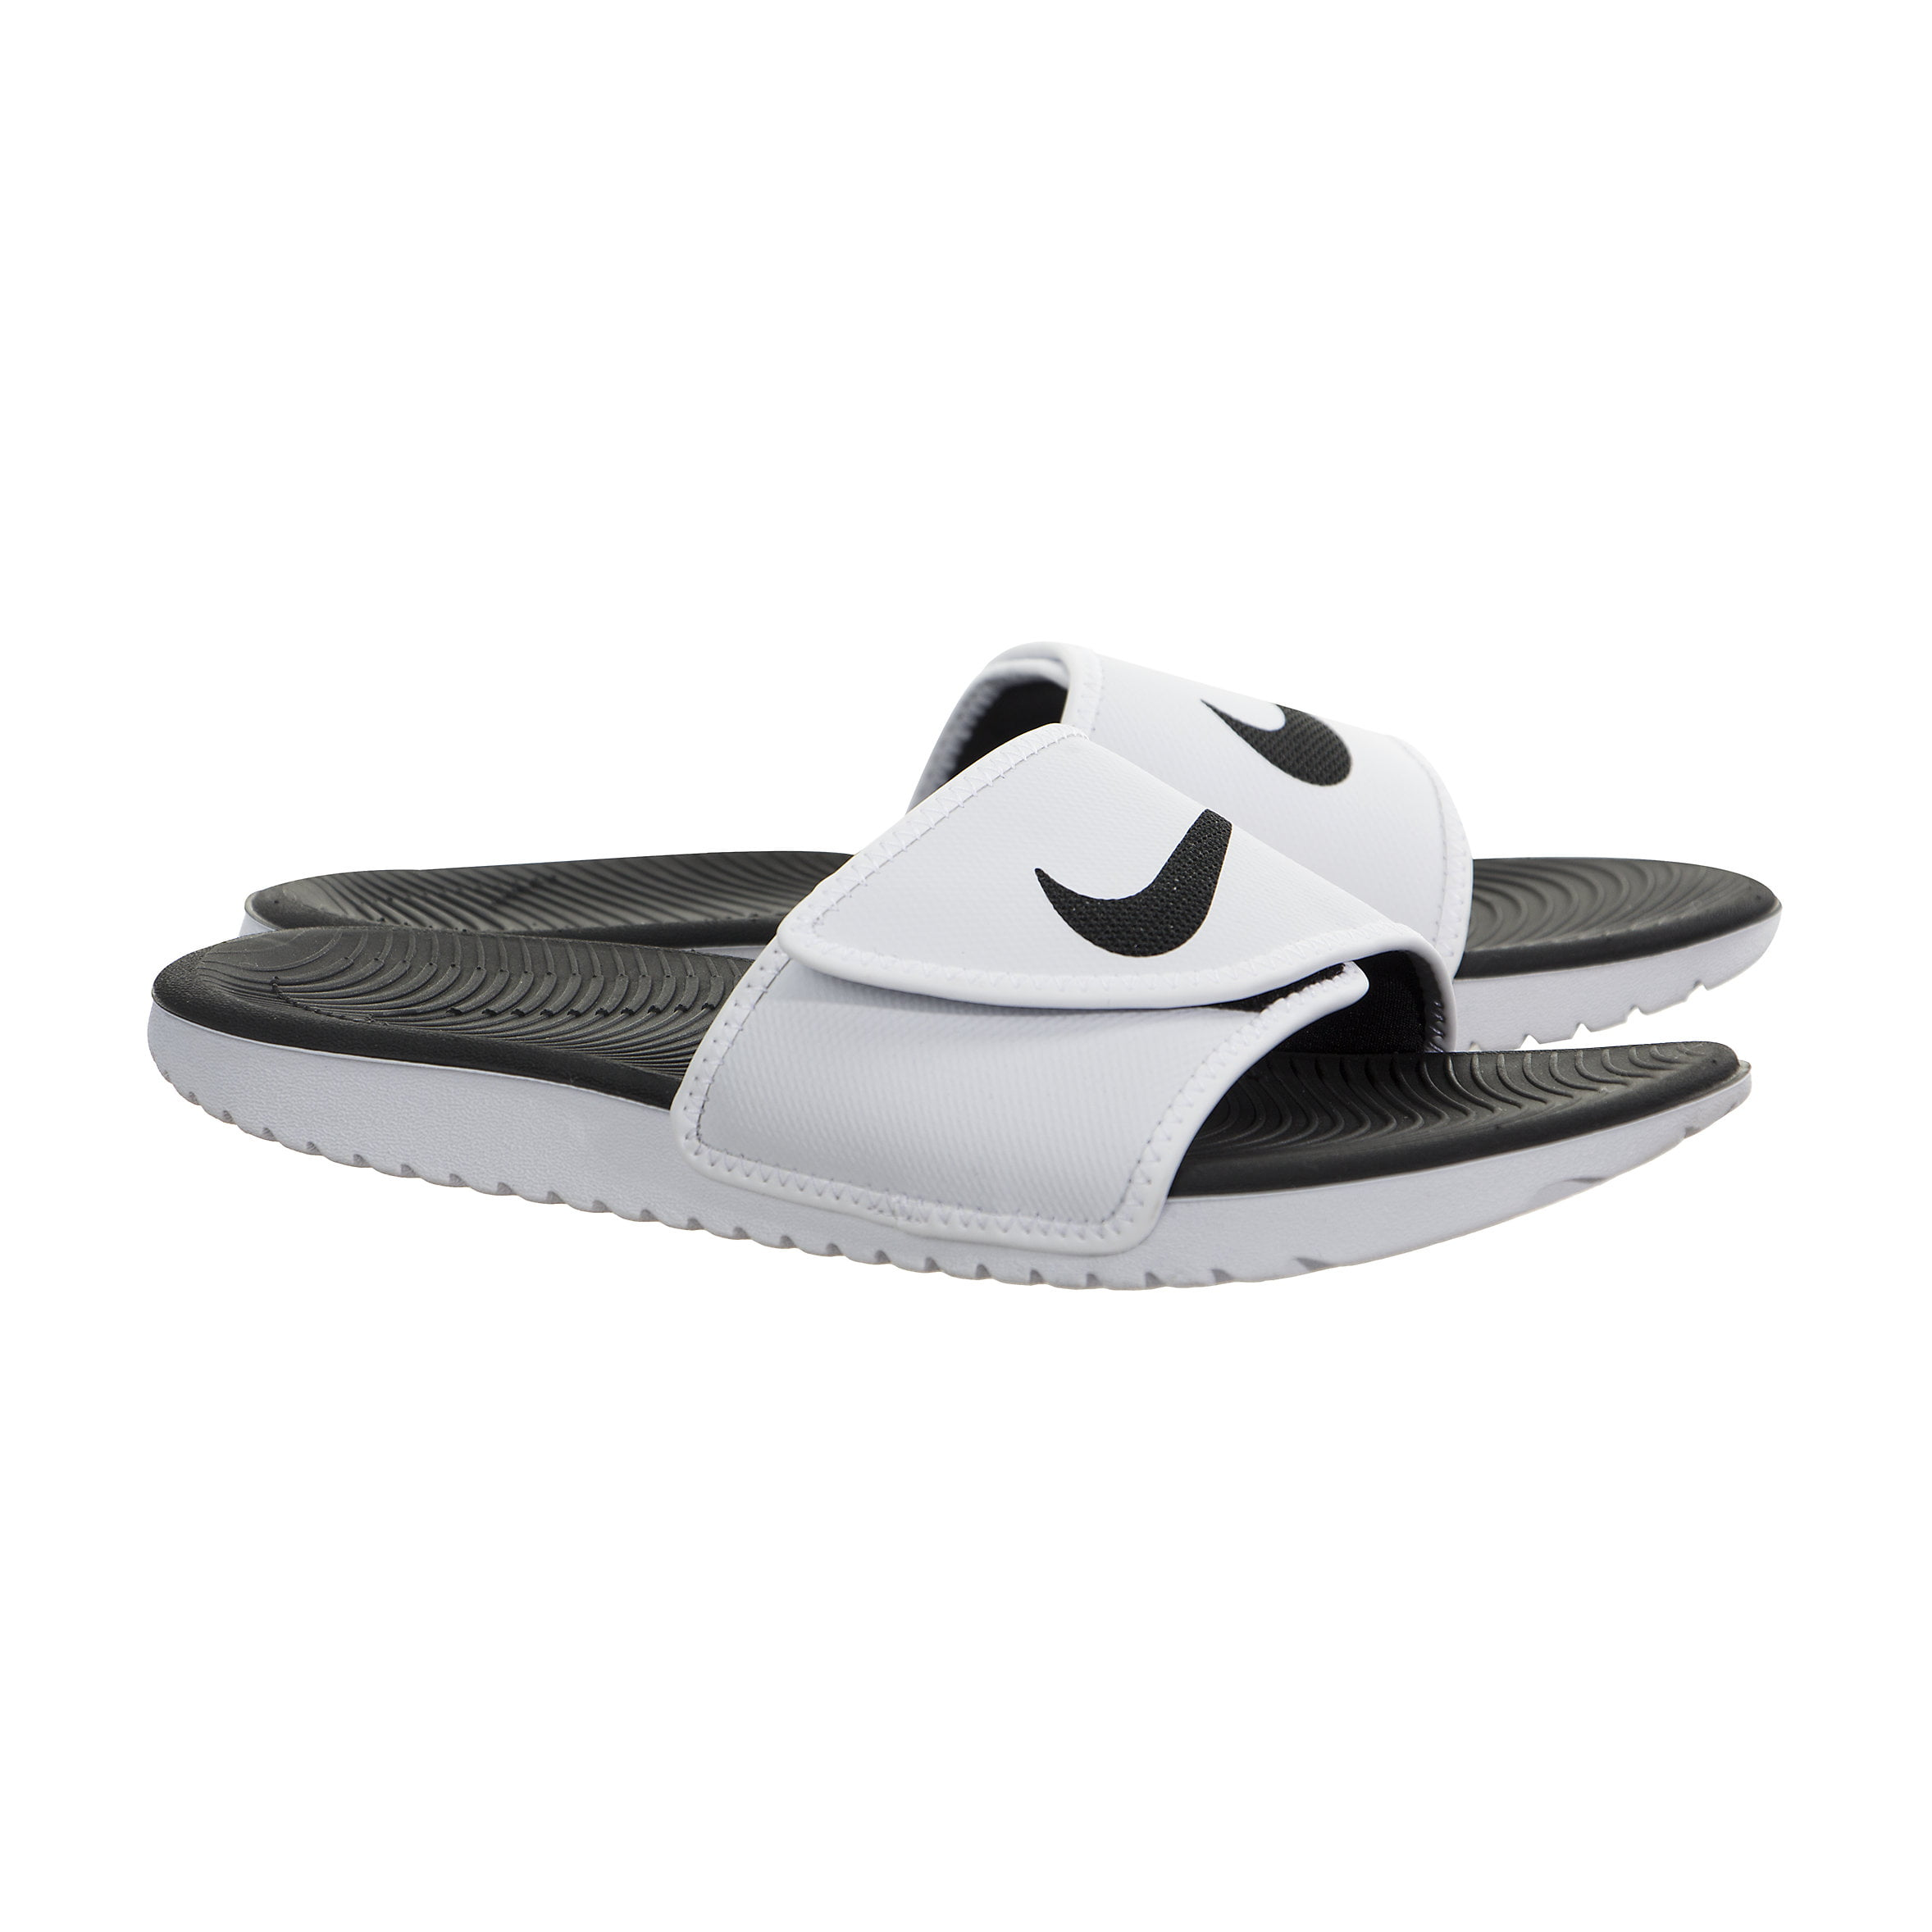 Nike Mens Kawa Adjustable Slide Sandals White/Black-White 9